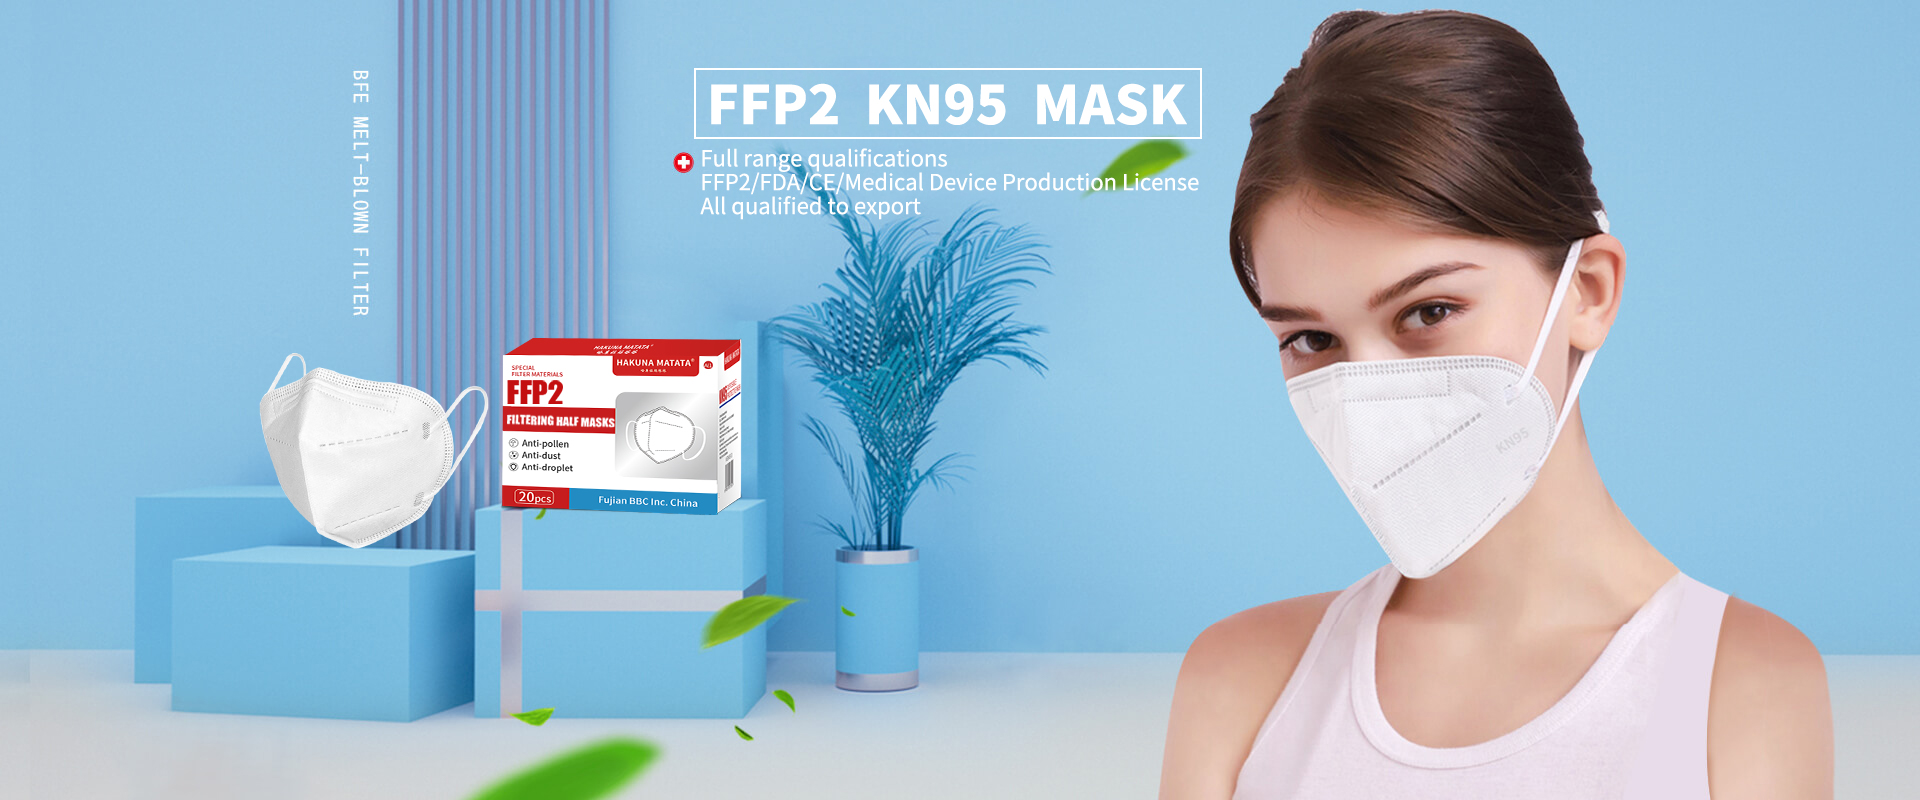 FFP2 Disposable Protective Mask